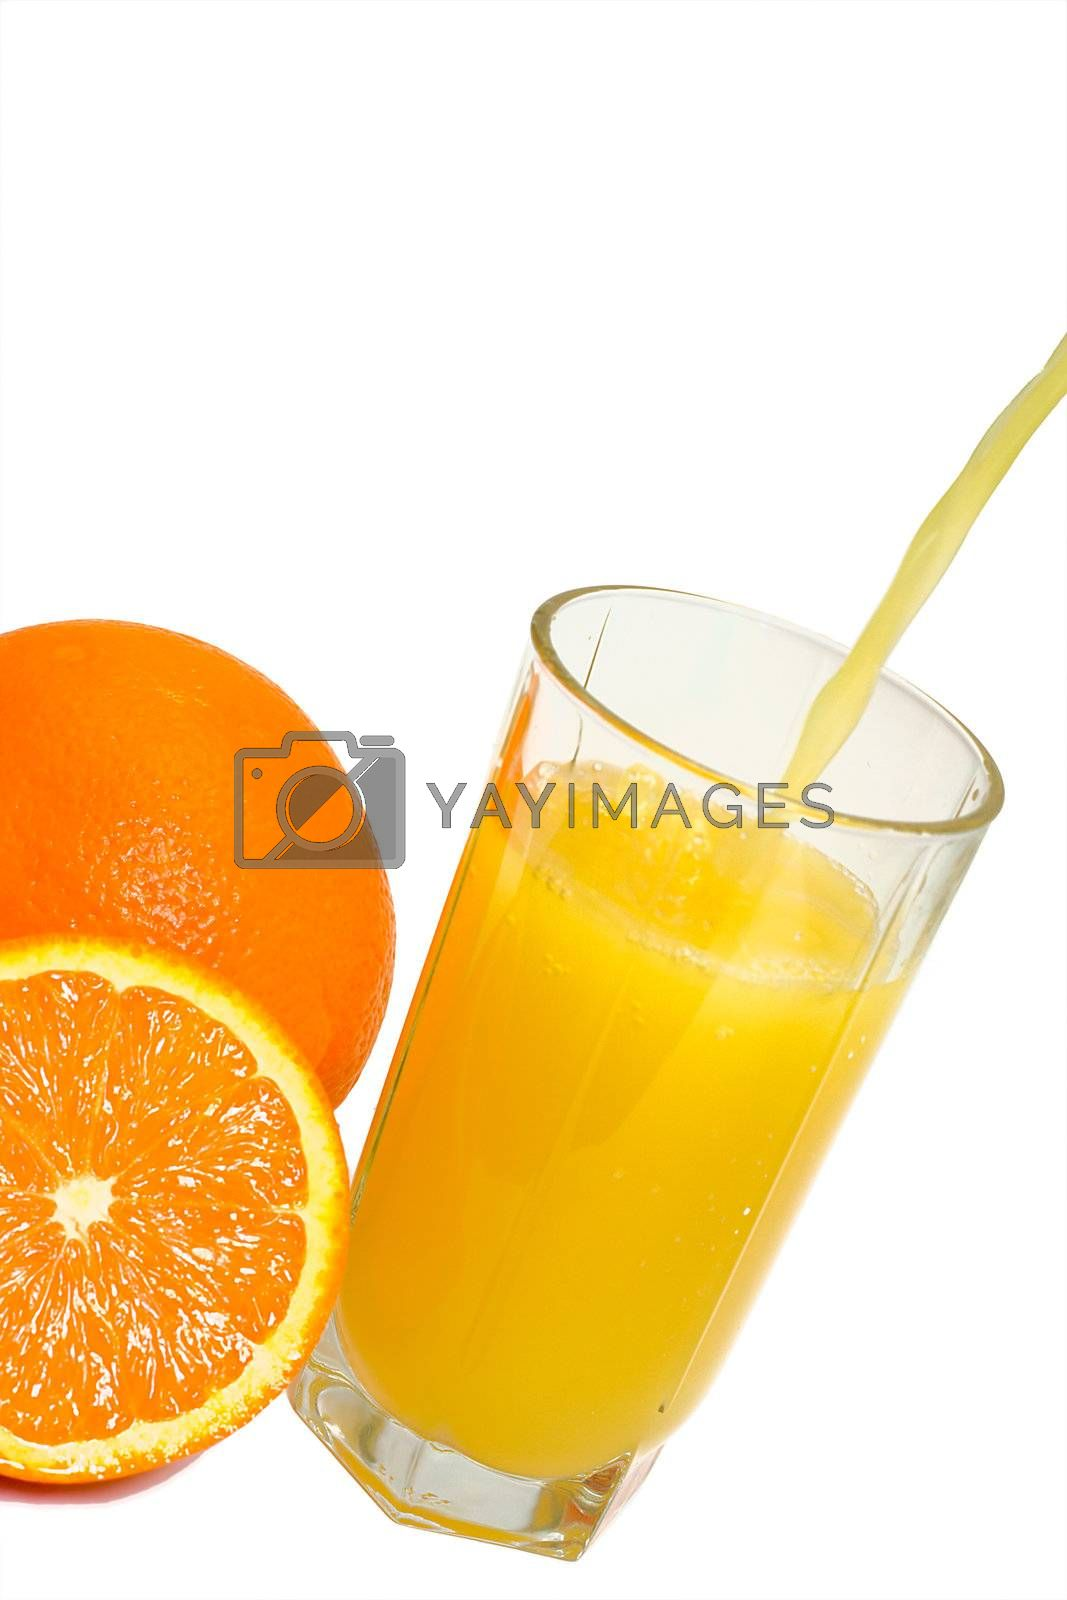 oranges and glass filling with juice, isolated on white